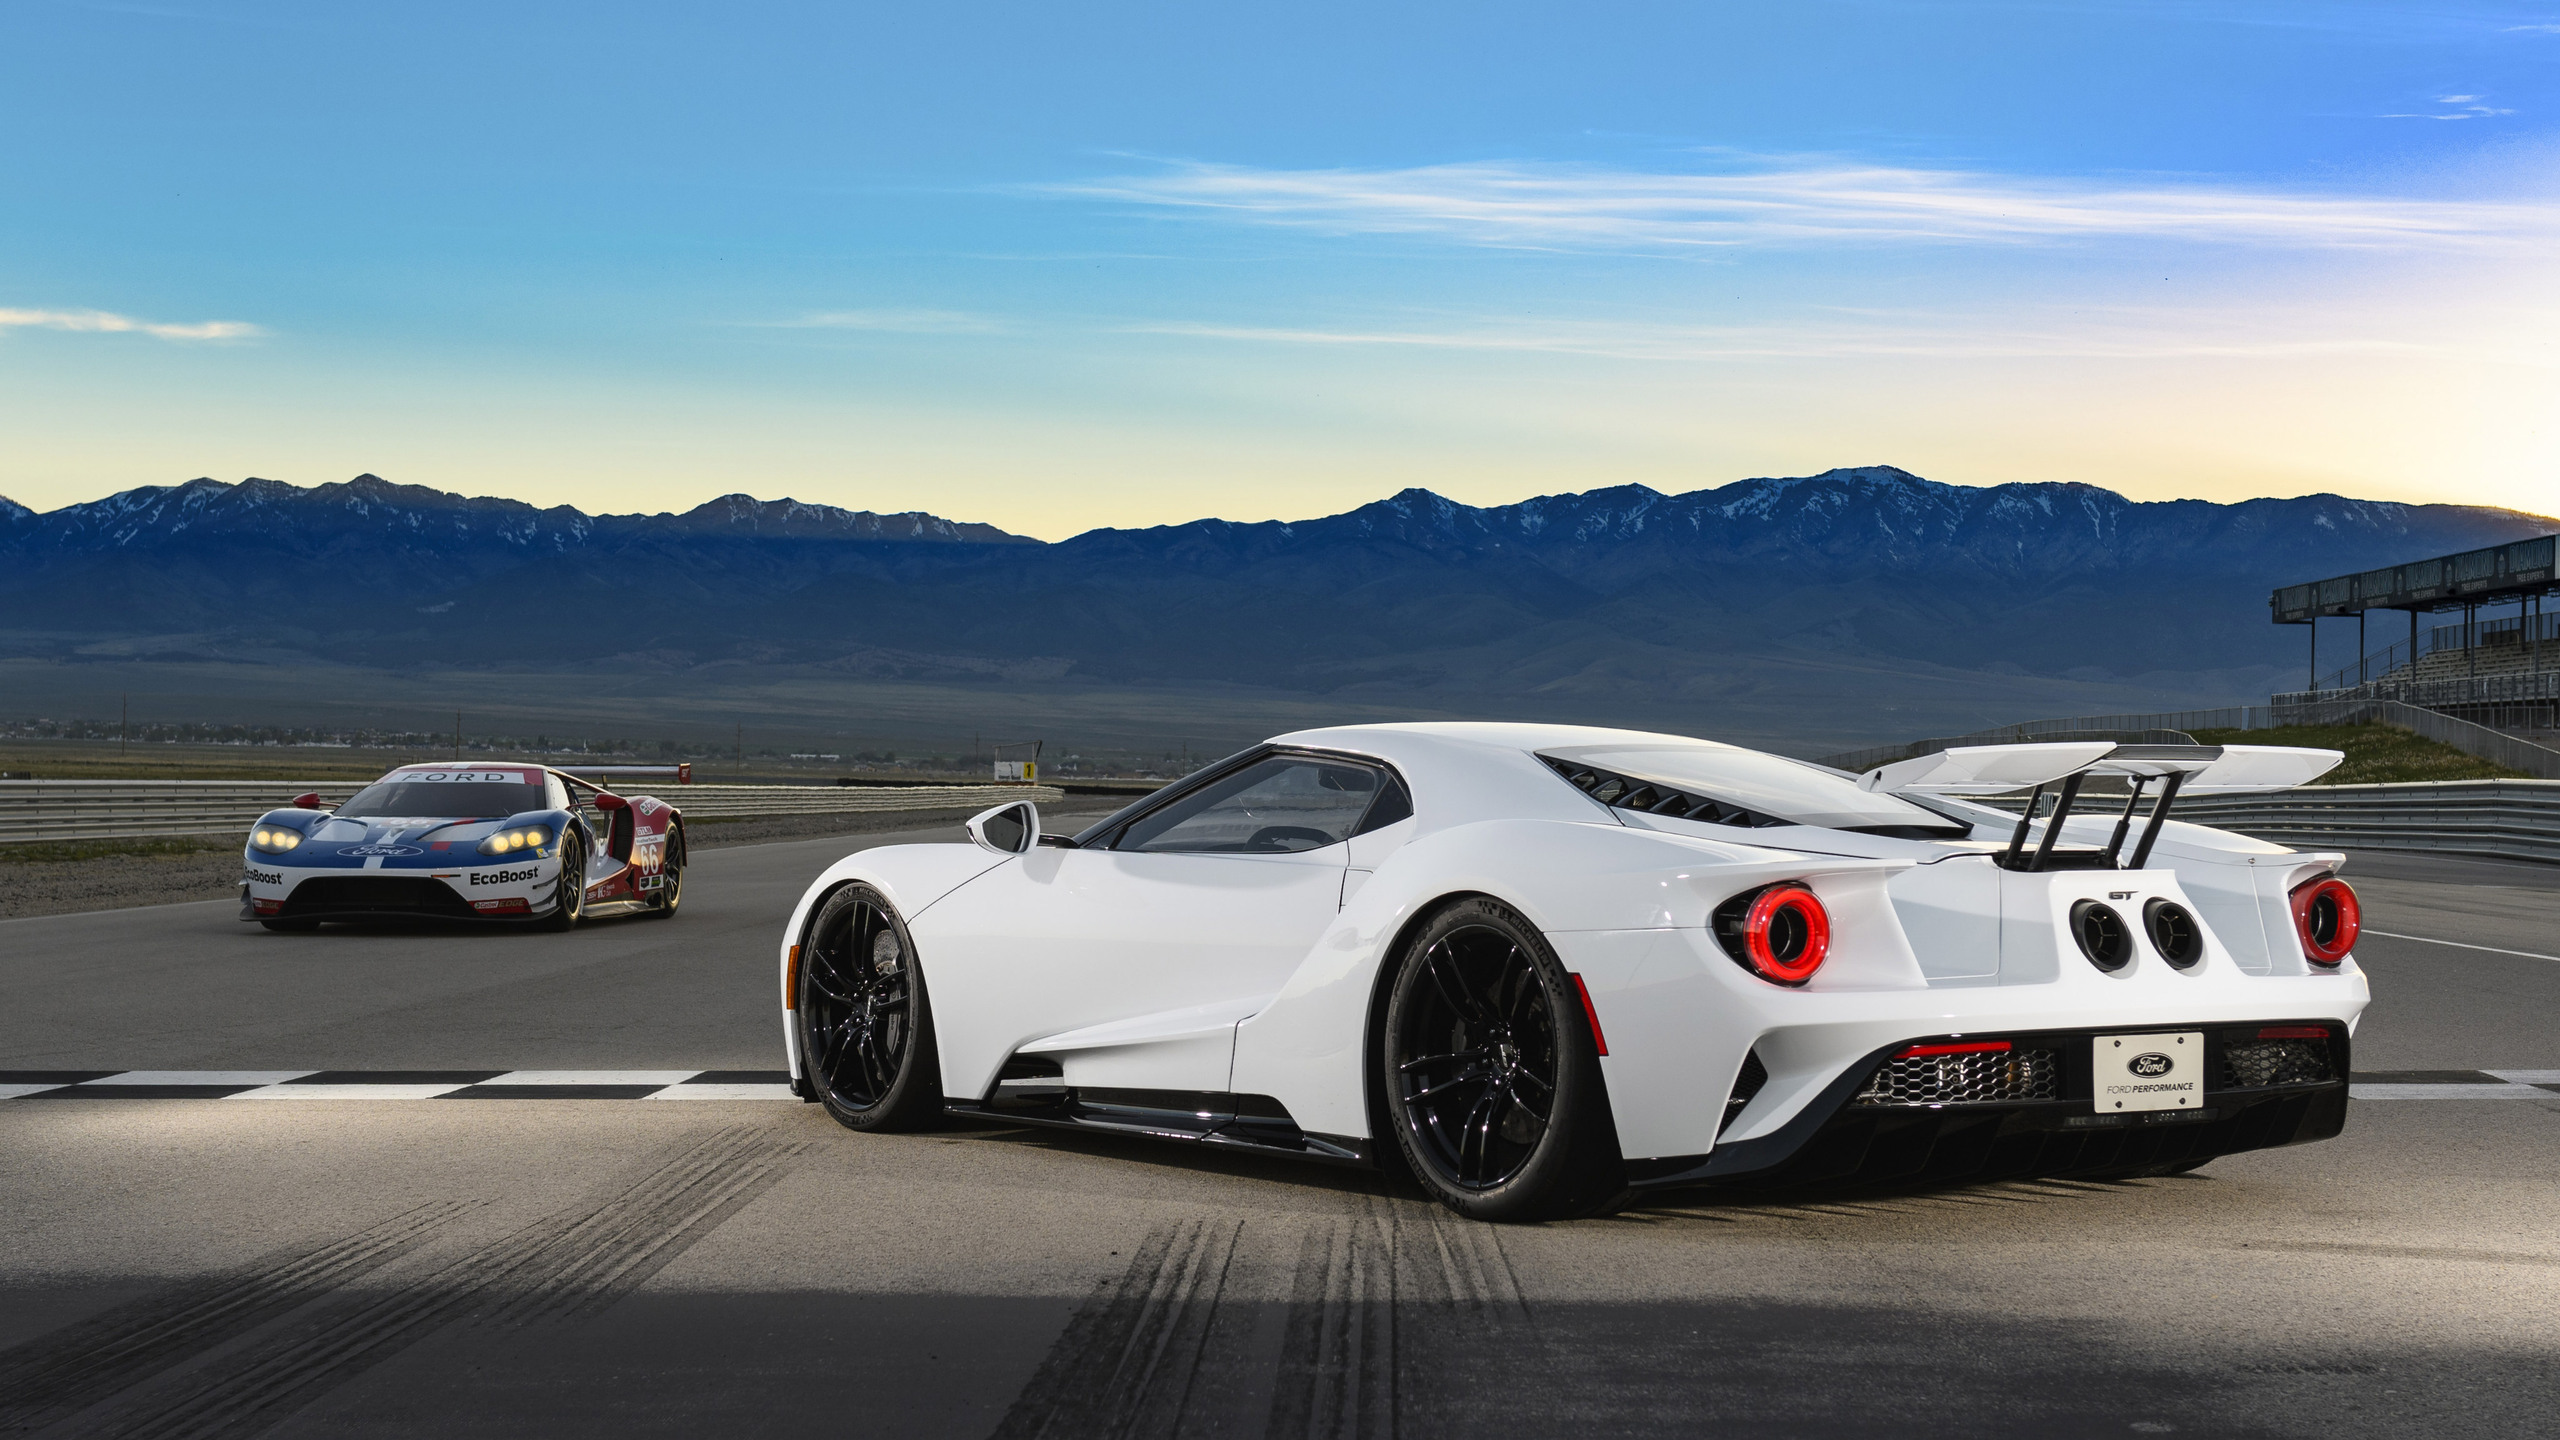 White Ford Gt Ford Gt Wallpaper Iphone 2048x1152 Download Hd Wallpaper Wallpapertip